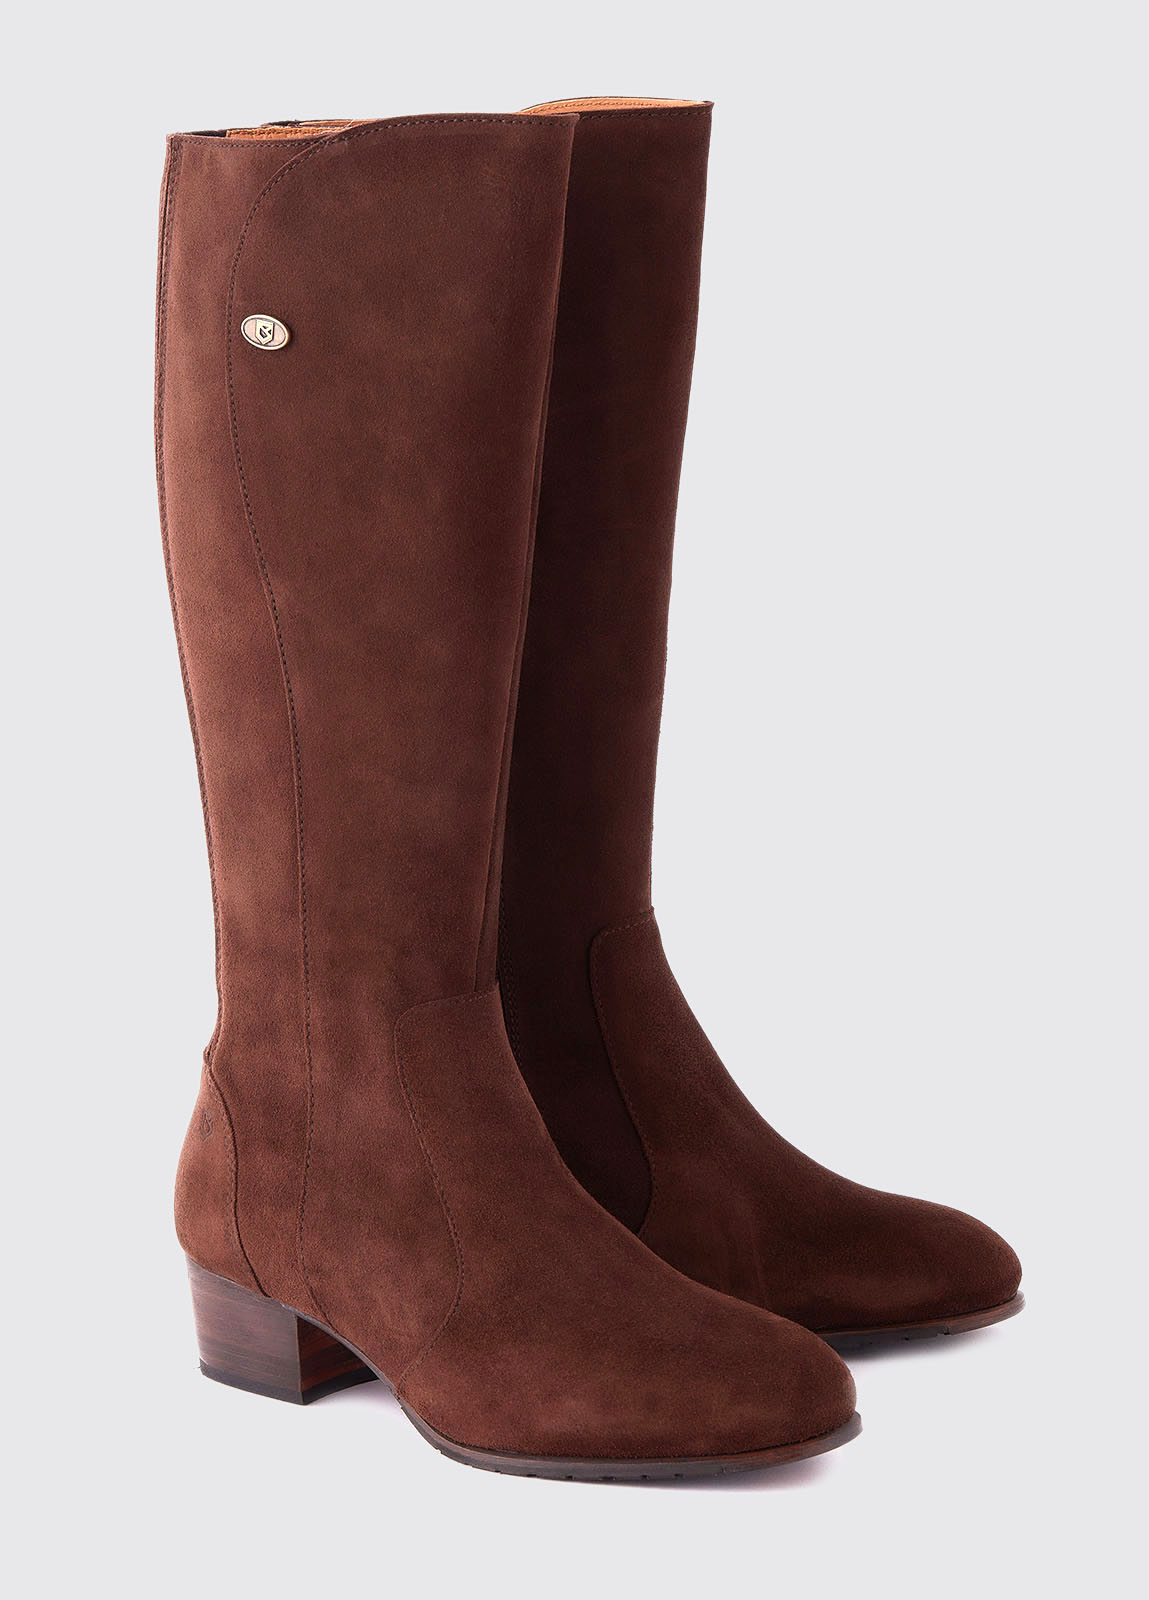 Downpatrick Knee High Boot - Cigar